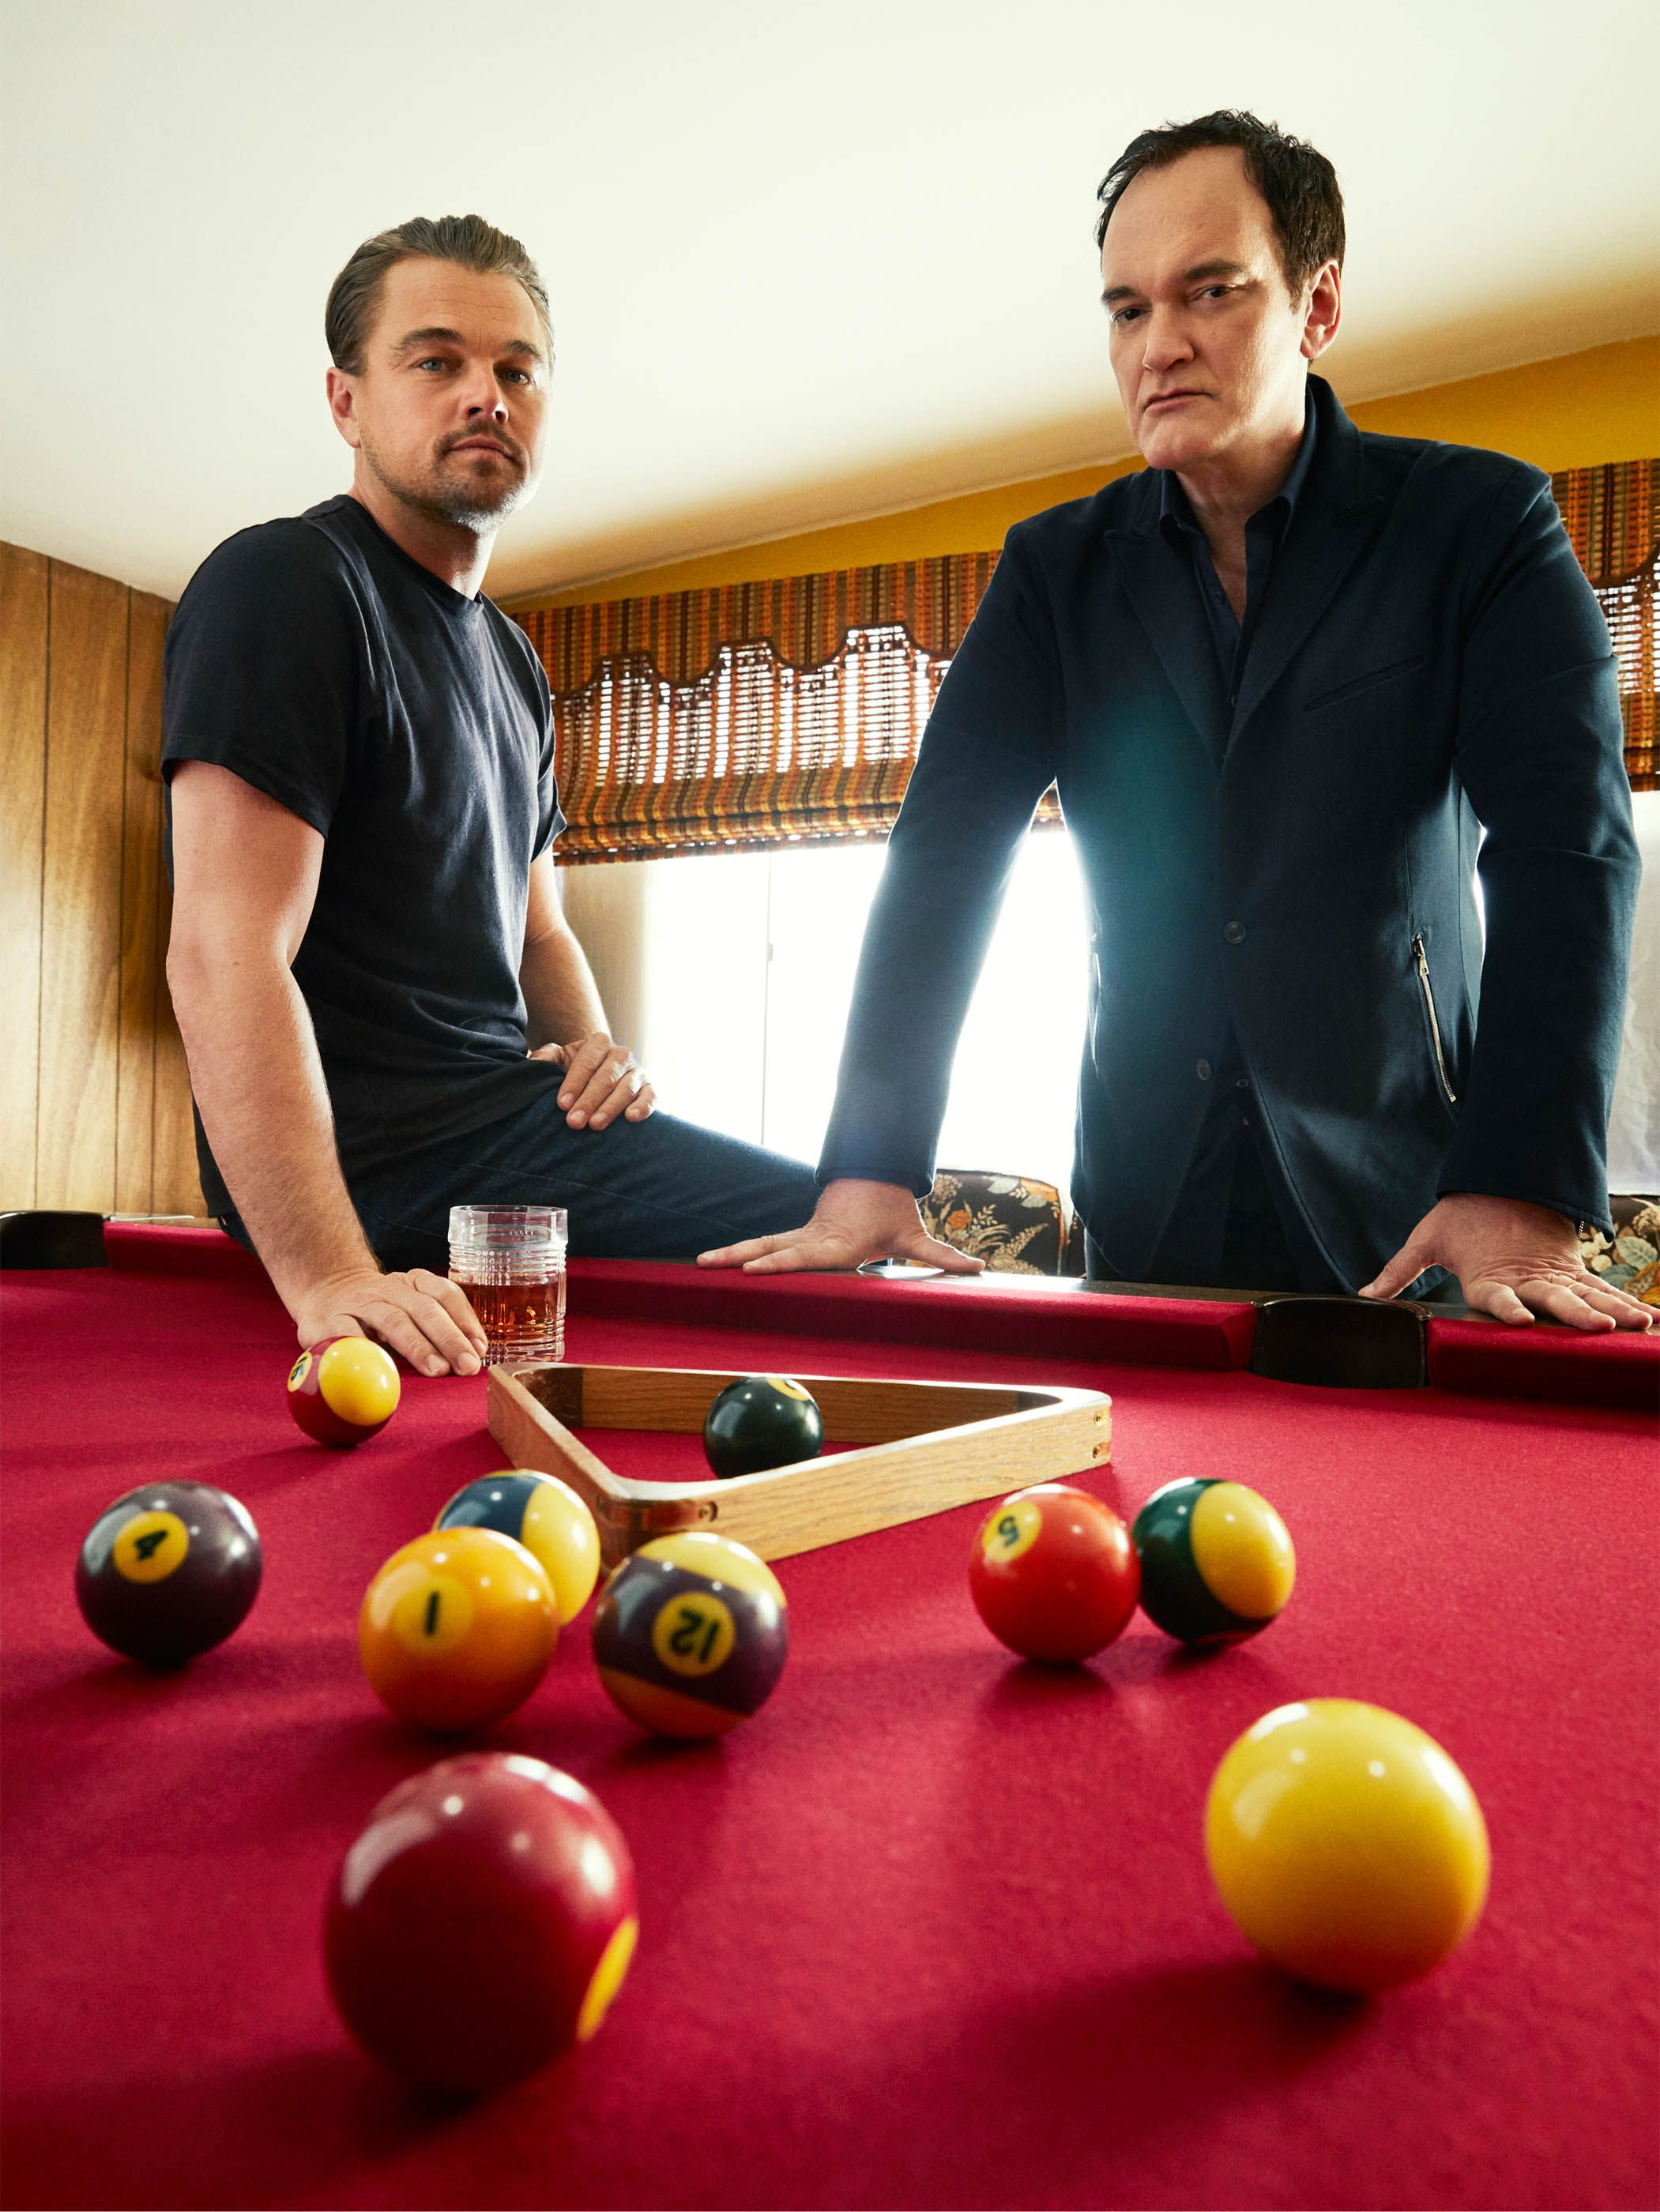 """Leonardo DiCaprio and Quentin Tarantino """"1969 is a seminal time in cinema history... Quentin so brilliantly captures through these characters' eyes how Hollywood was changing."""" —Leonardo DiCaprio"""